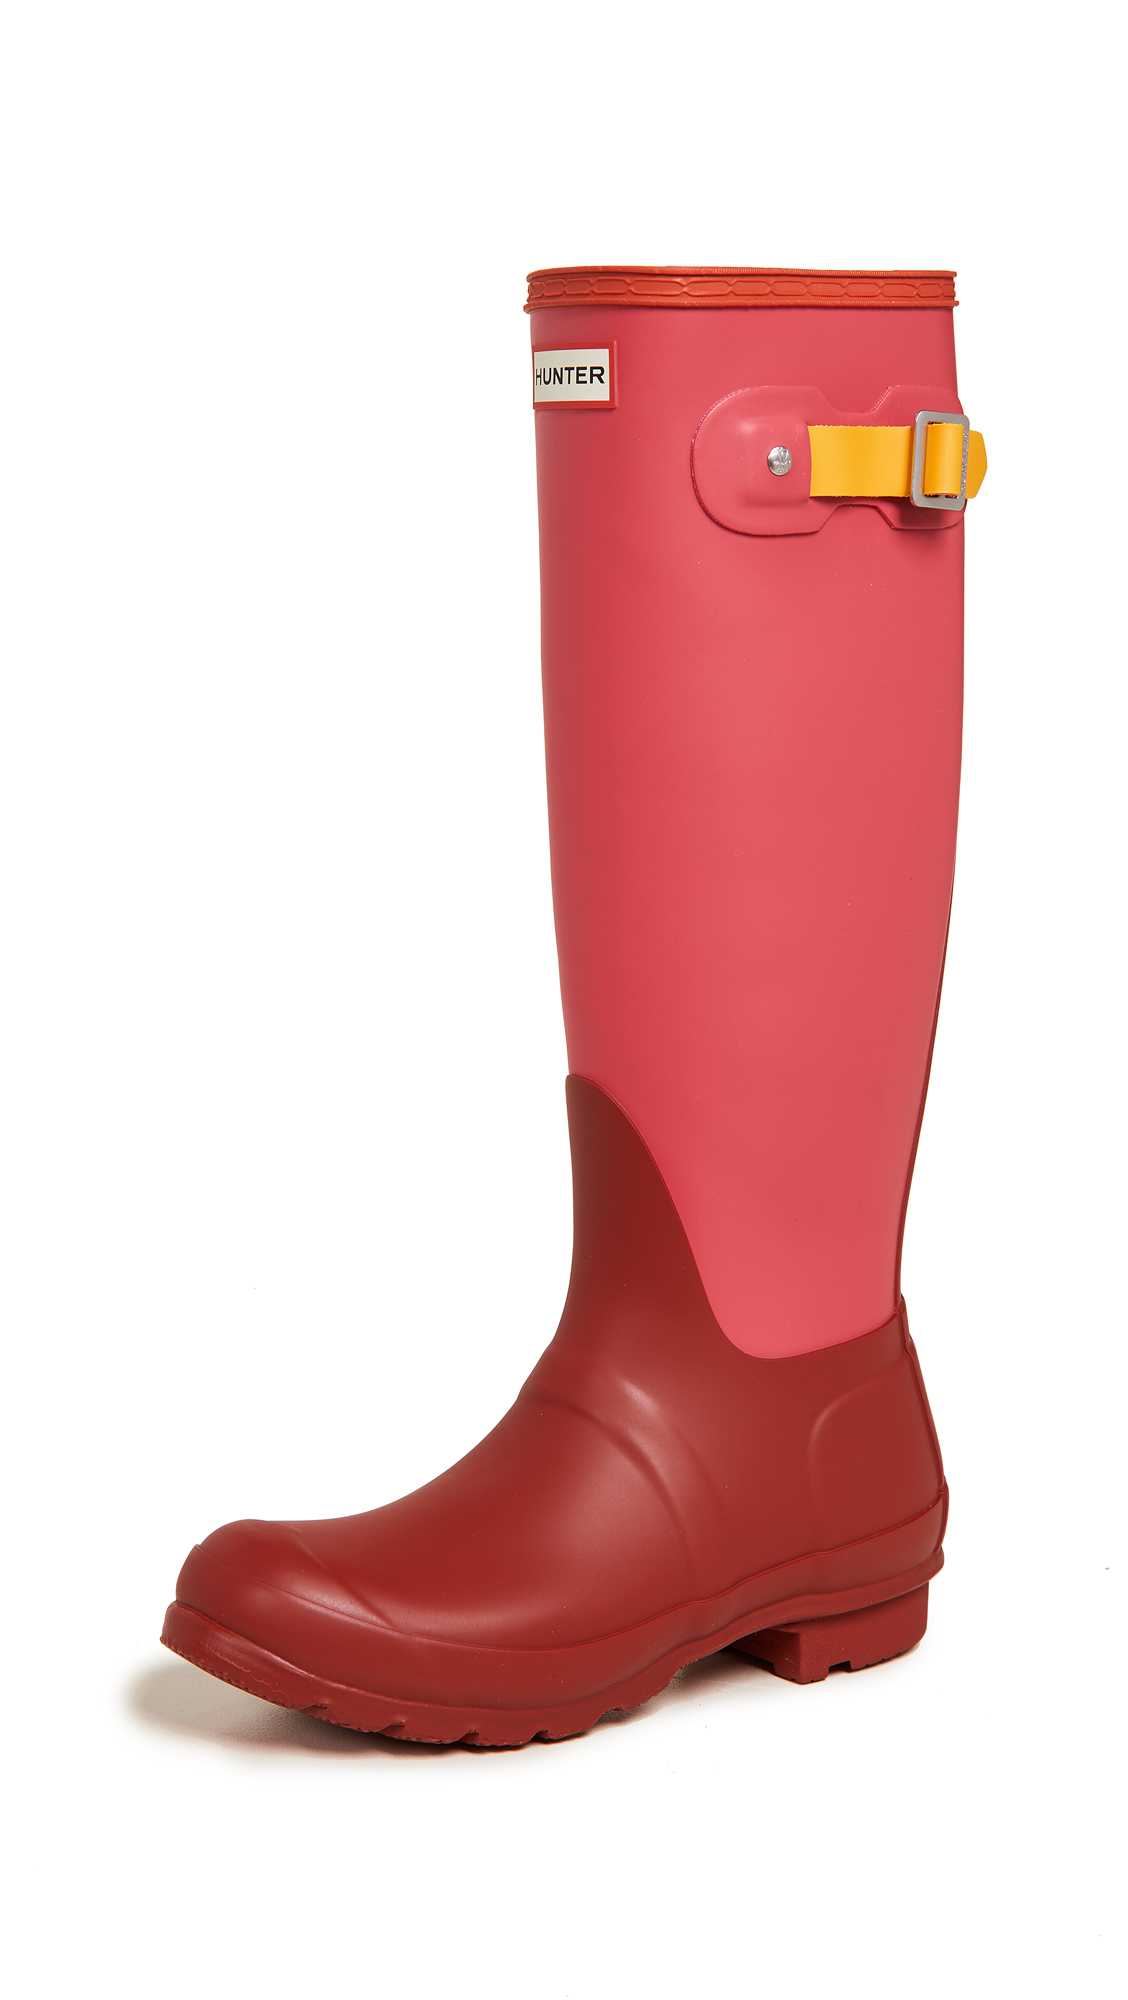 Hunter Boots Original Tall Colorblock Boots - Military Red